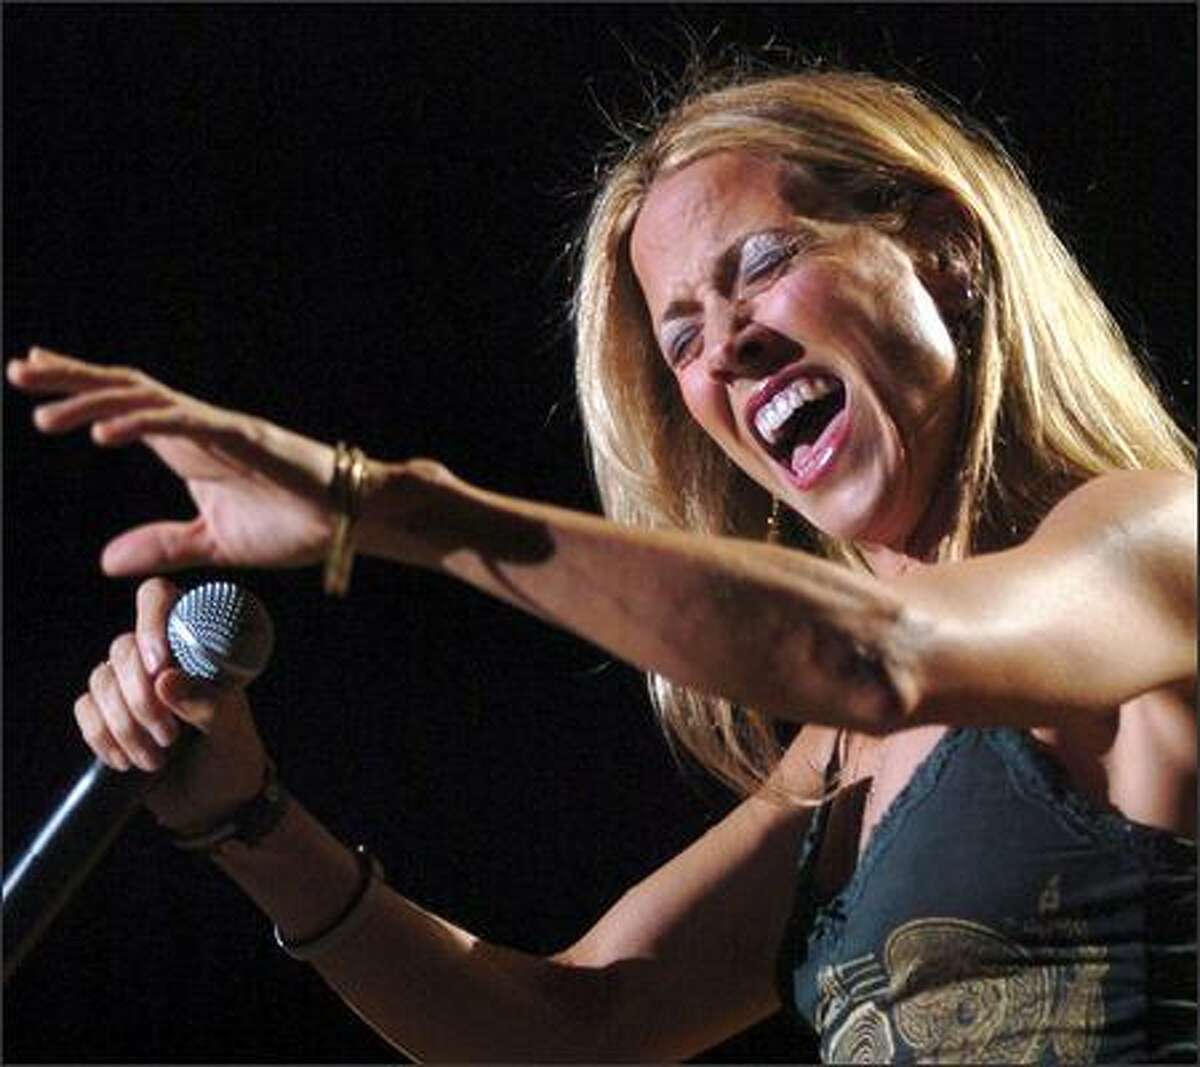 Sheryl Crow knocks 'em back in Council Bluffs, Iowa, as part of her 2006 Wildflower Tour. Wildflower is also the title of her new CD, her first in three years and much praised by critics.